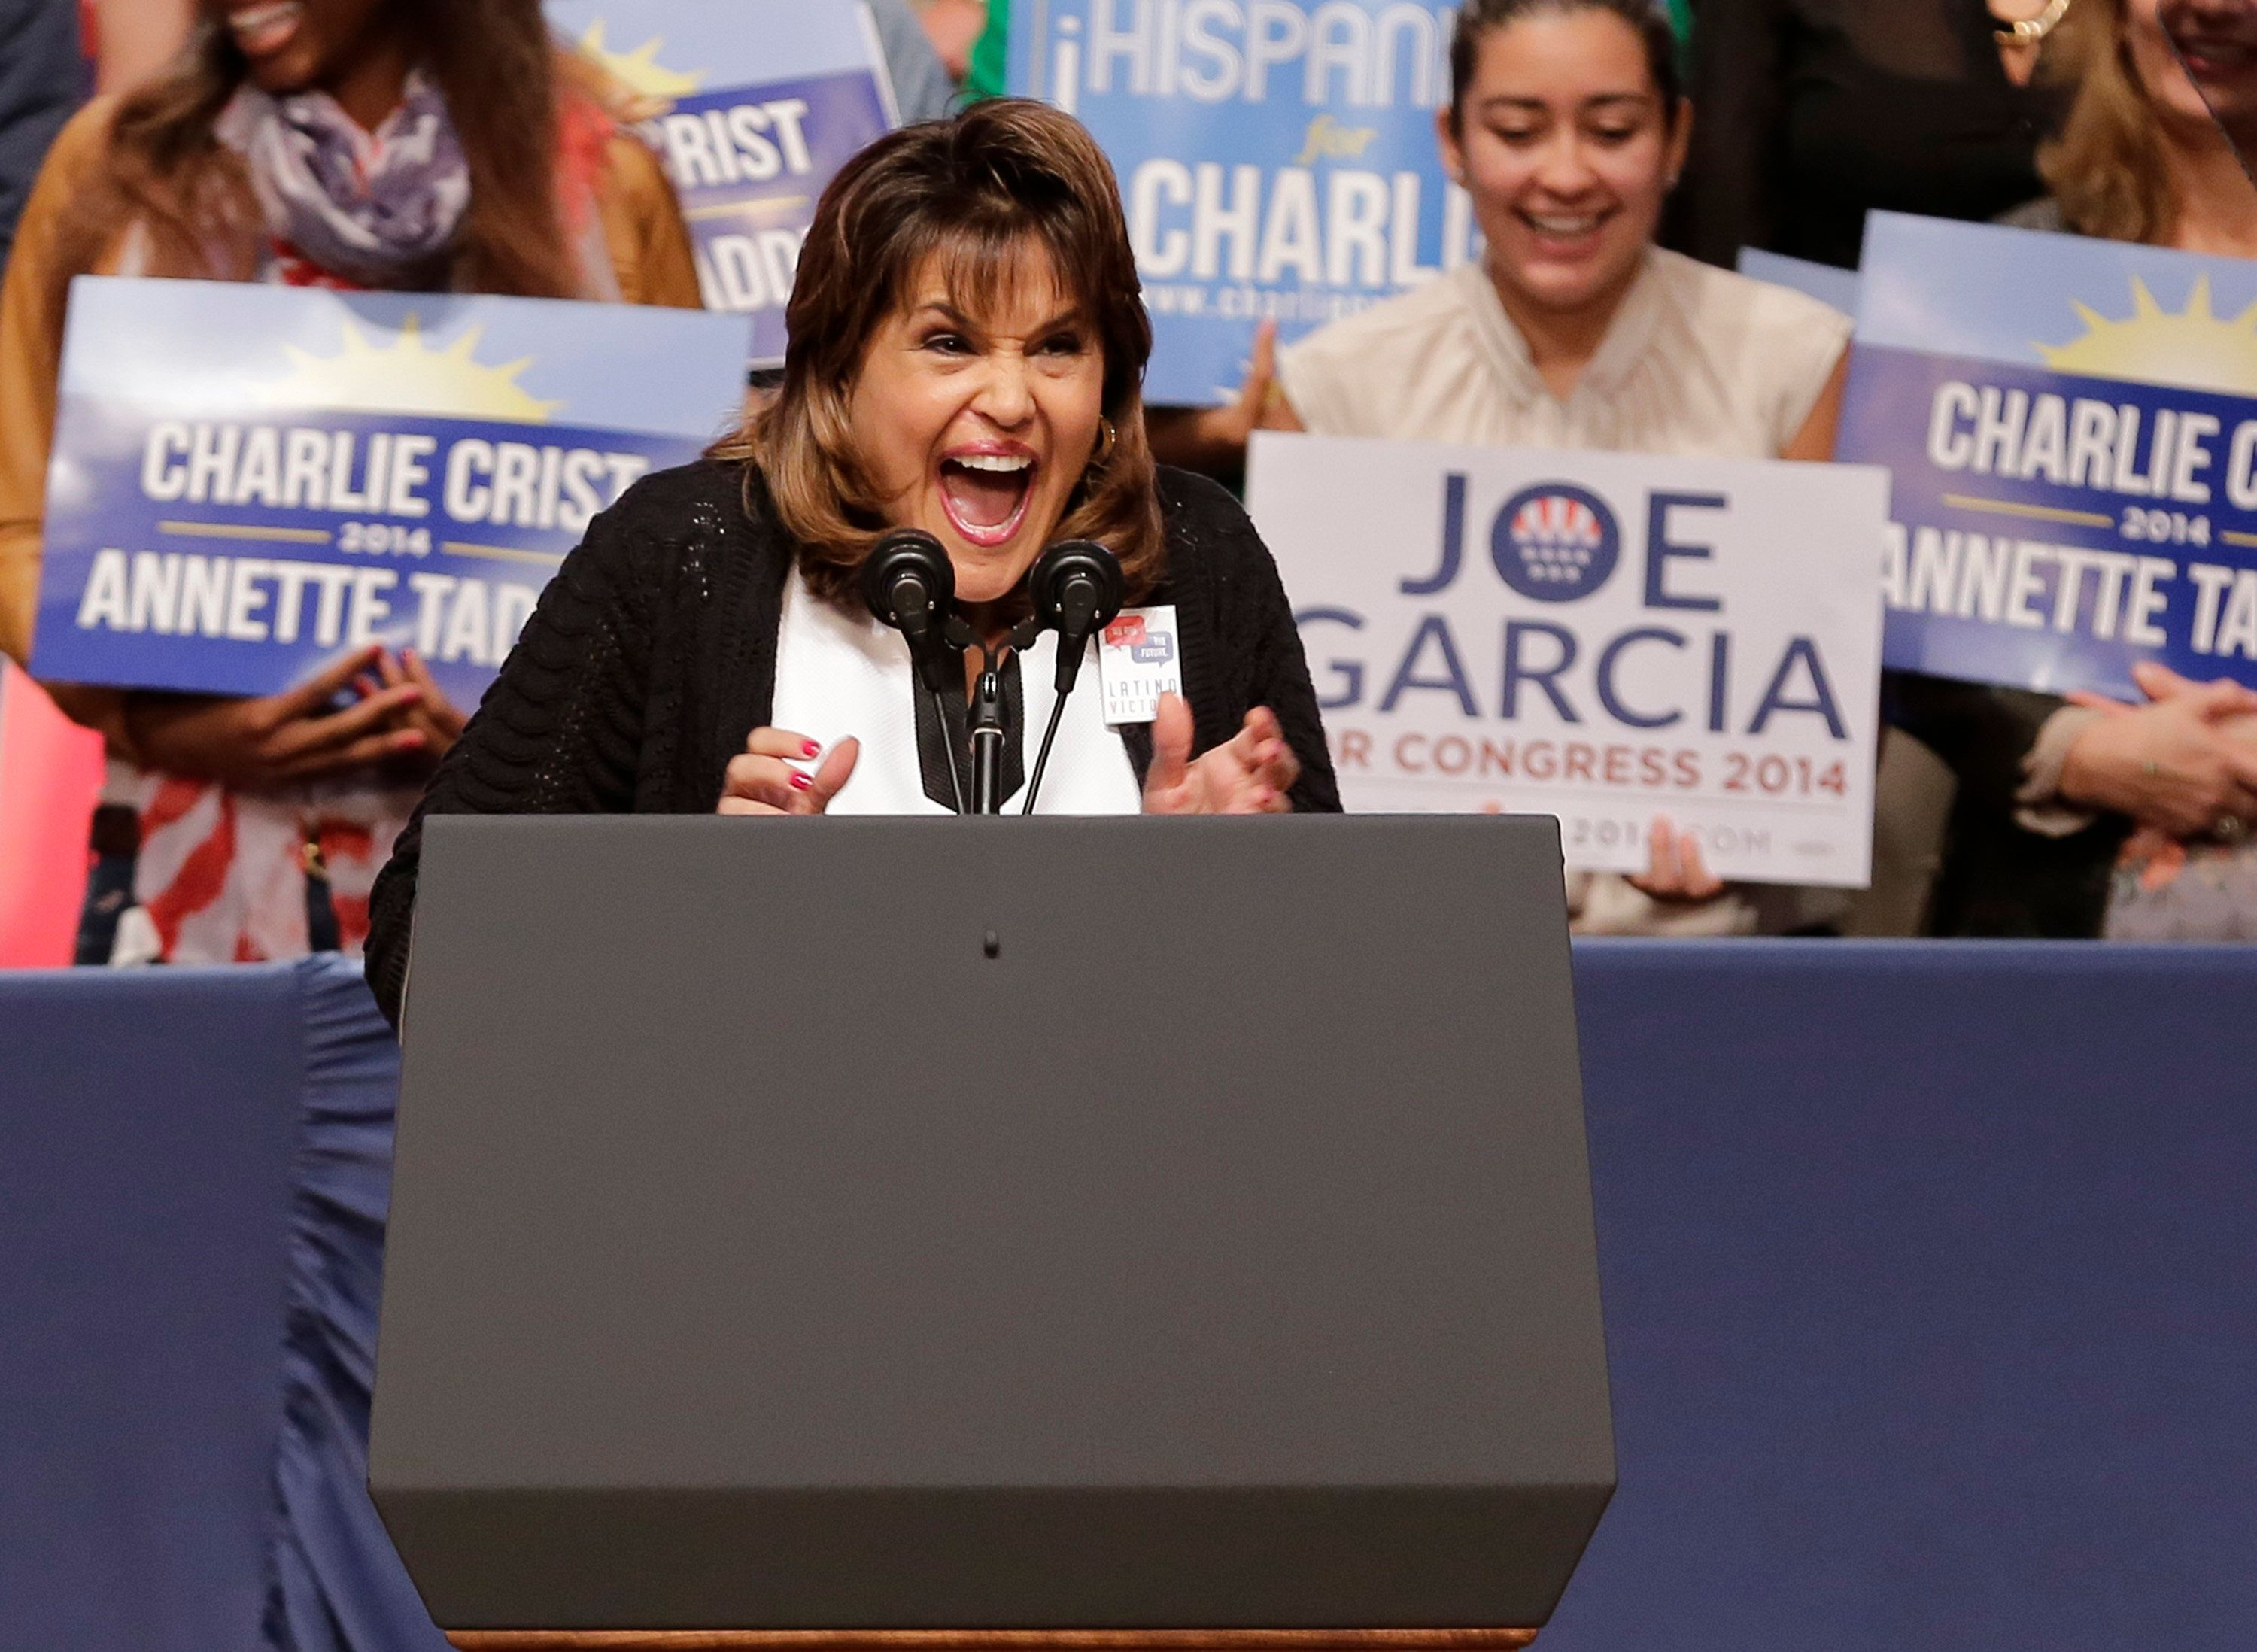 MIAMI, FL - NOVEMBER 02: Annette Taddeo speaks at the Latino Victory Project Rally at Florida International University on November 2, 2014 in Miami, Florida. (Photo by Alexander Tamargo/Getty Images for Latino Victory Project)